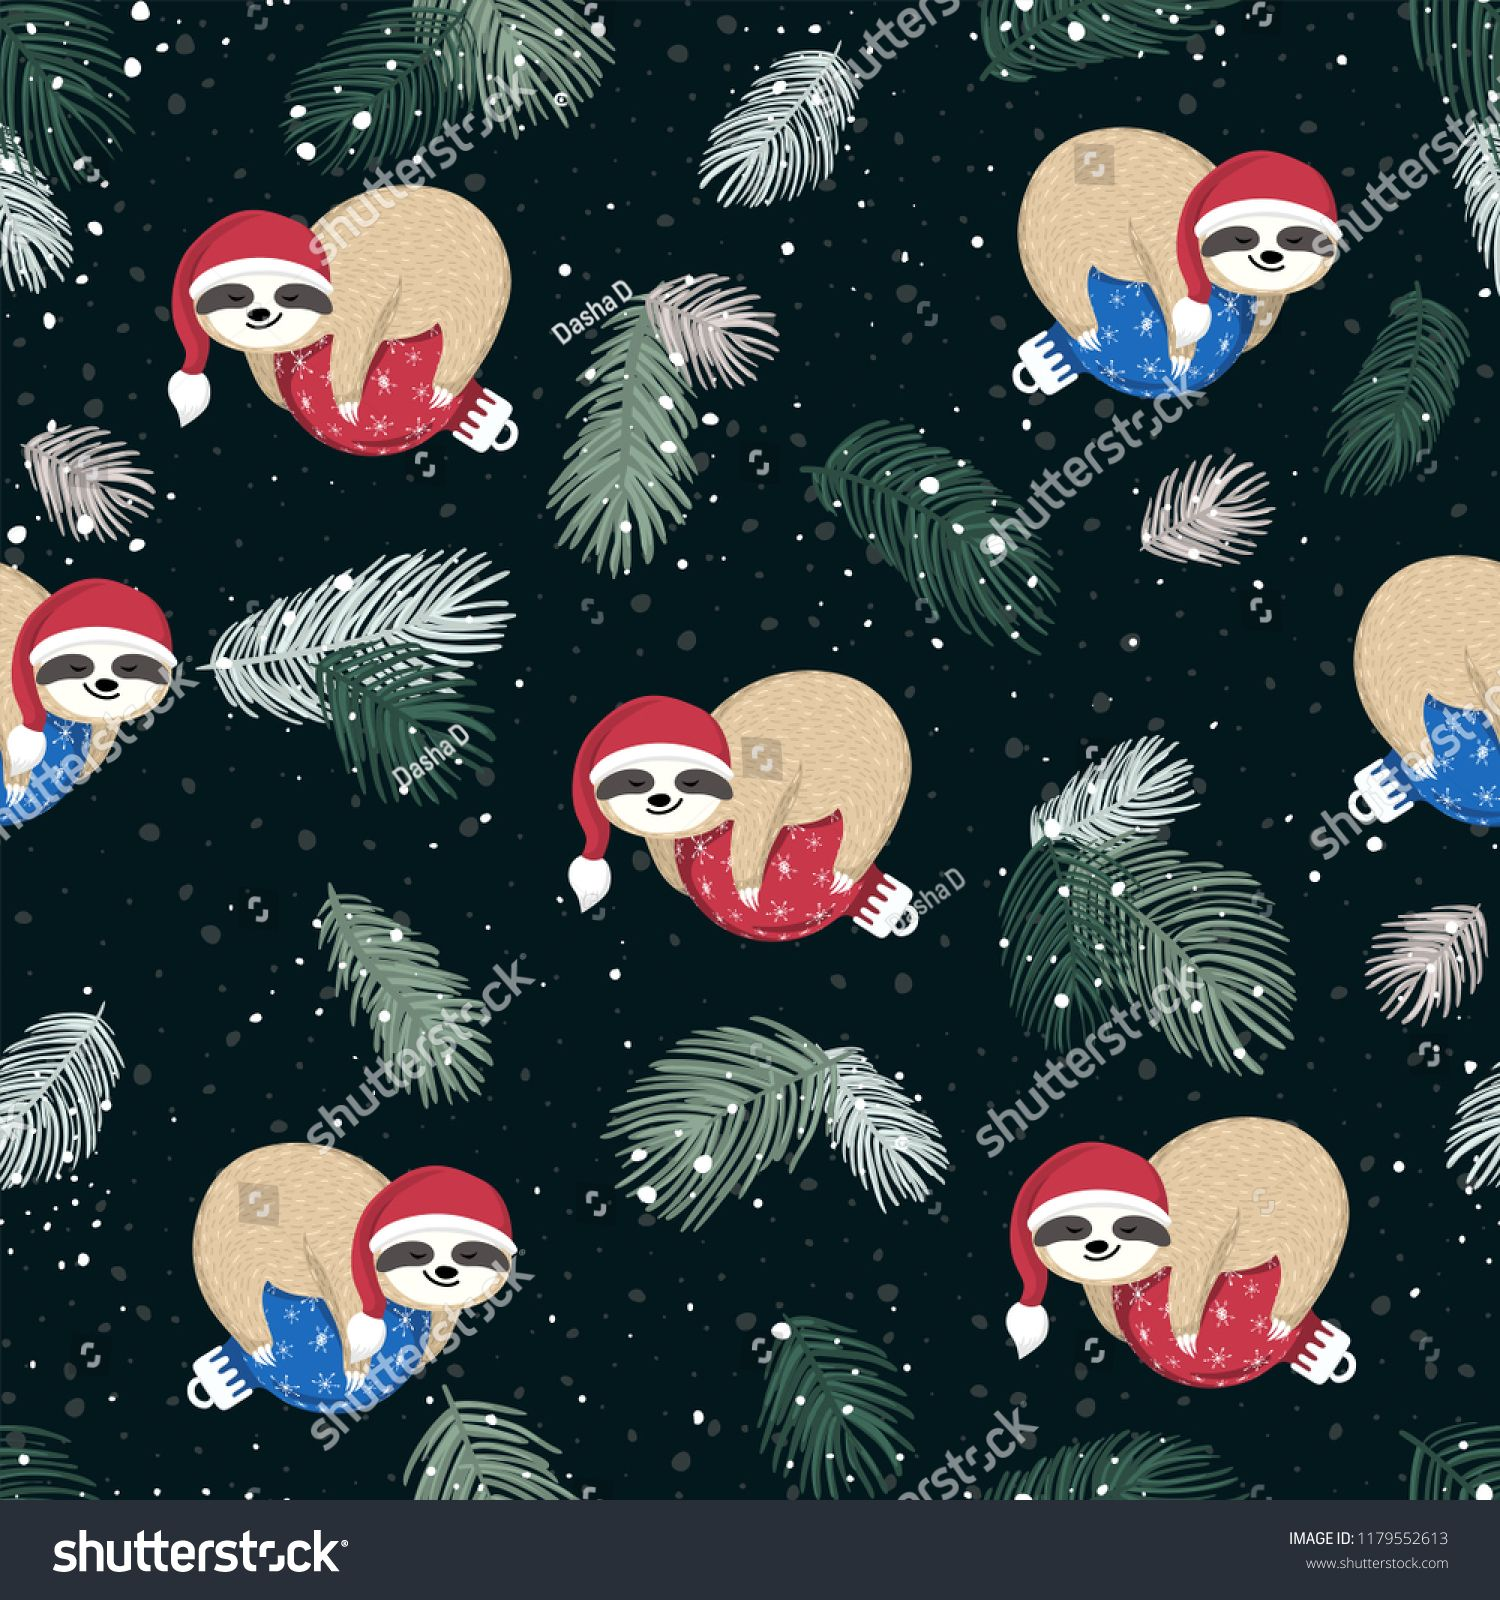 Seamless Pattern With Cute Baby Sloths Sleeping On The Blue And Red Christmas Ball Adorable Cartoon Animal Wearing Cute Baby Sloths Christmas Sloth Baby Sloth